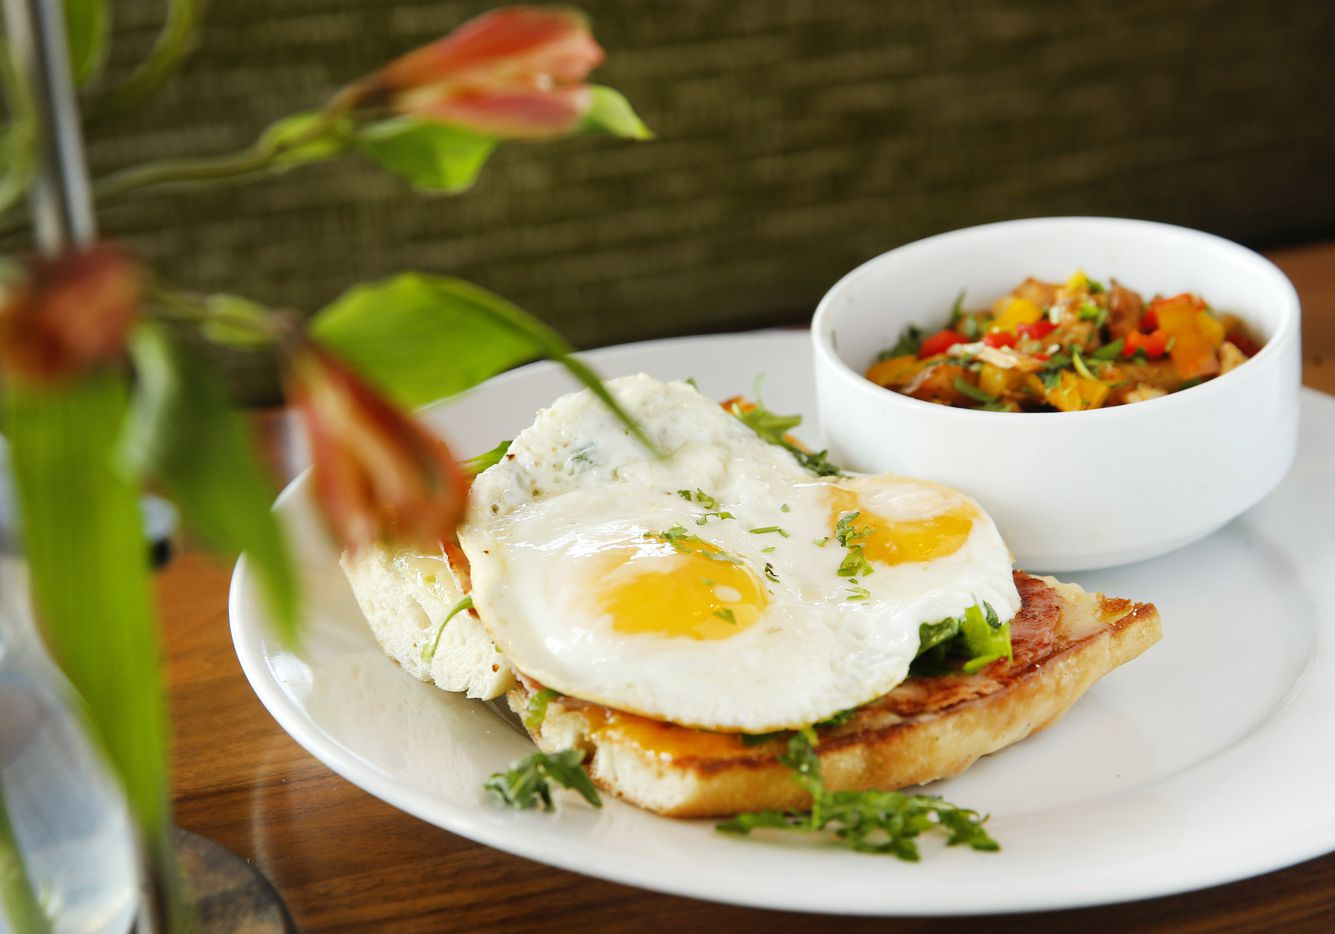 The open-faced sandwich is a local baguette with two fried eggs, all-natural ham swiss and arugula at Bellagreen. It is served with a side of potatoes O'Brien.